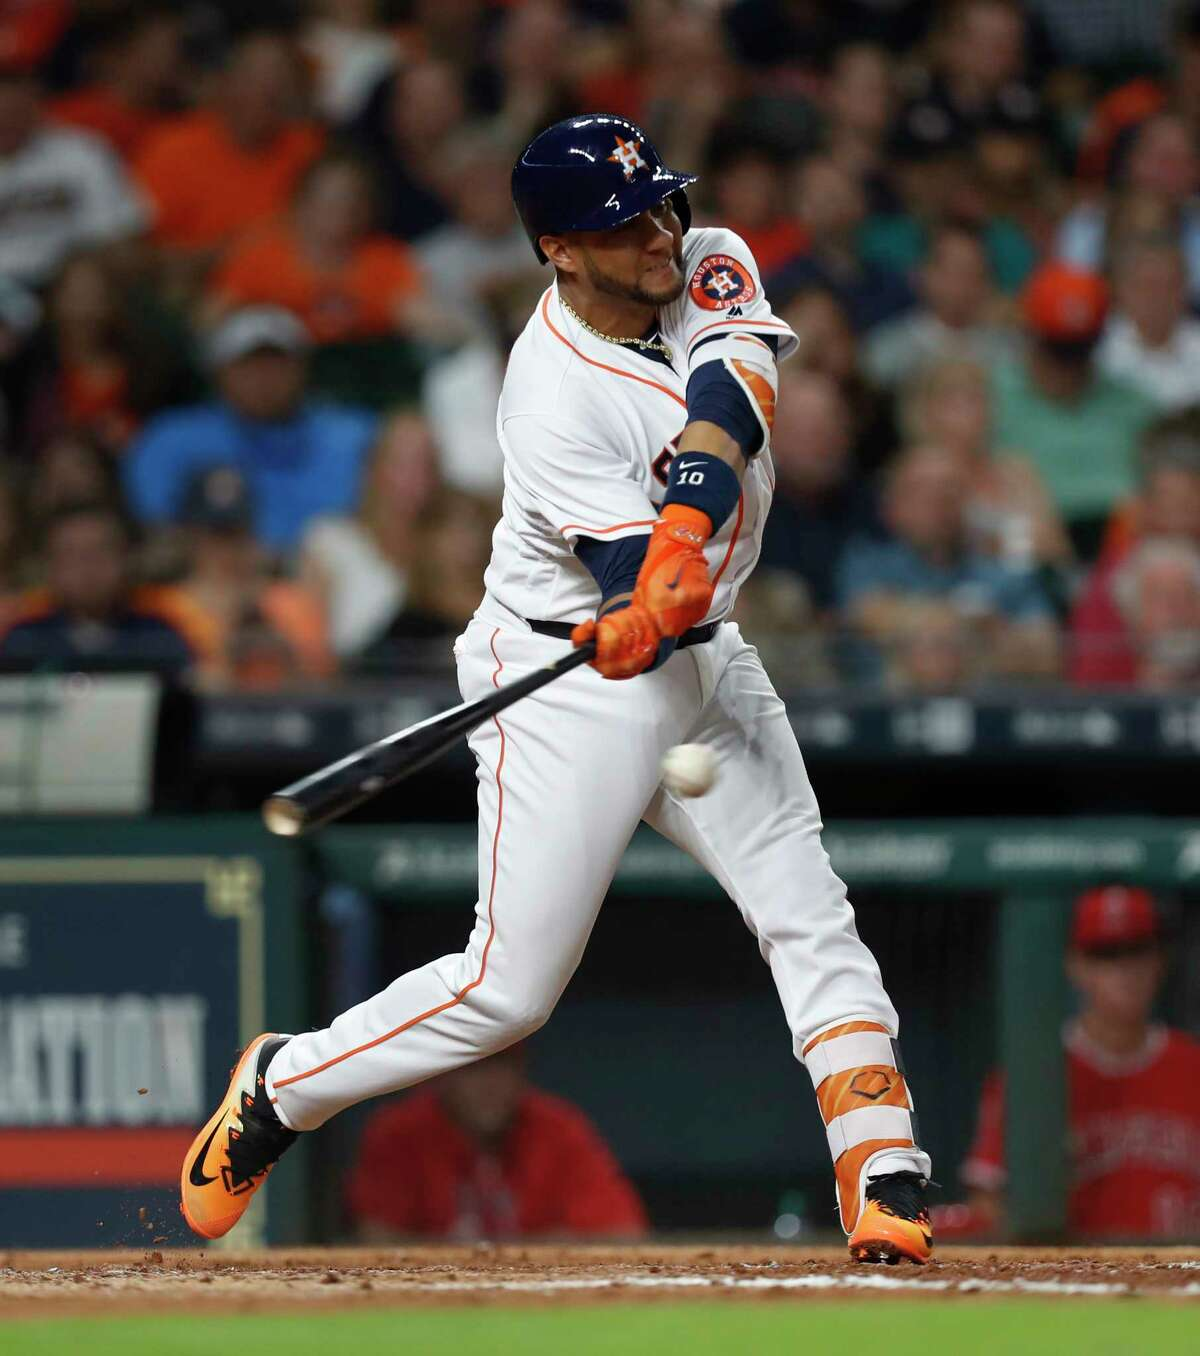 Yuli Gurriel, who has gone 10-for22 while hitting safely in six of his last seven games, delivers an RBI single to put the Astros up 2-1 in the fifth Wednesday.